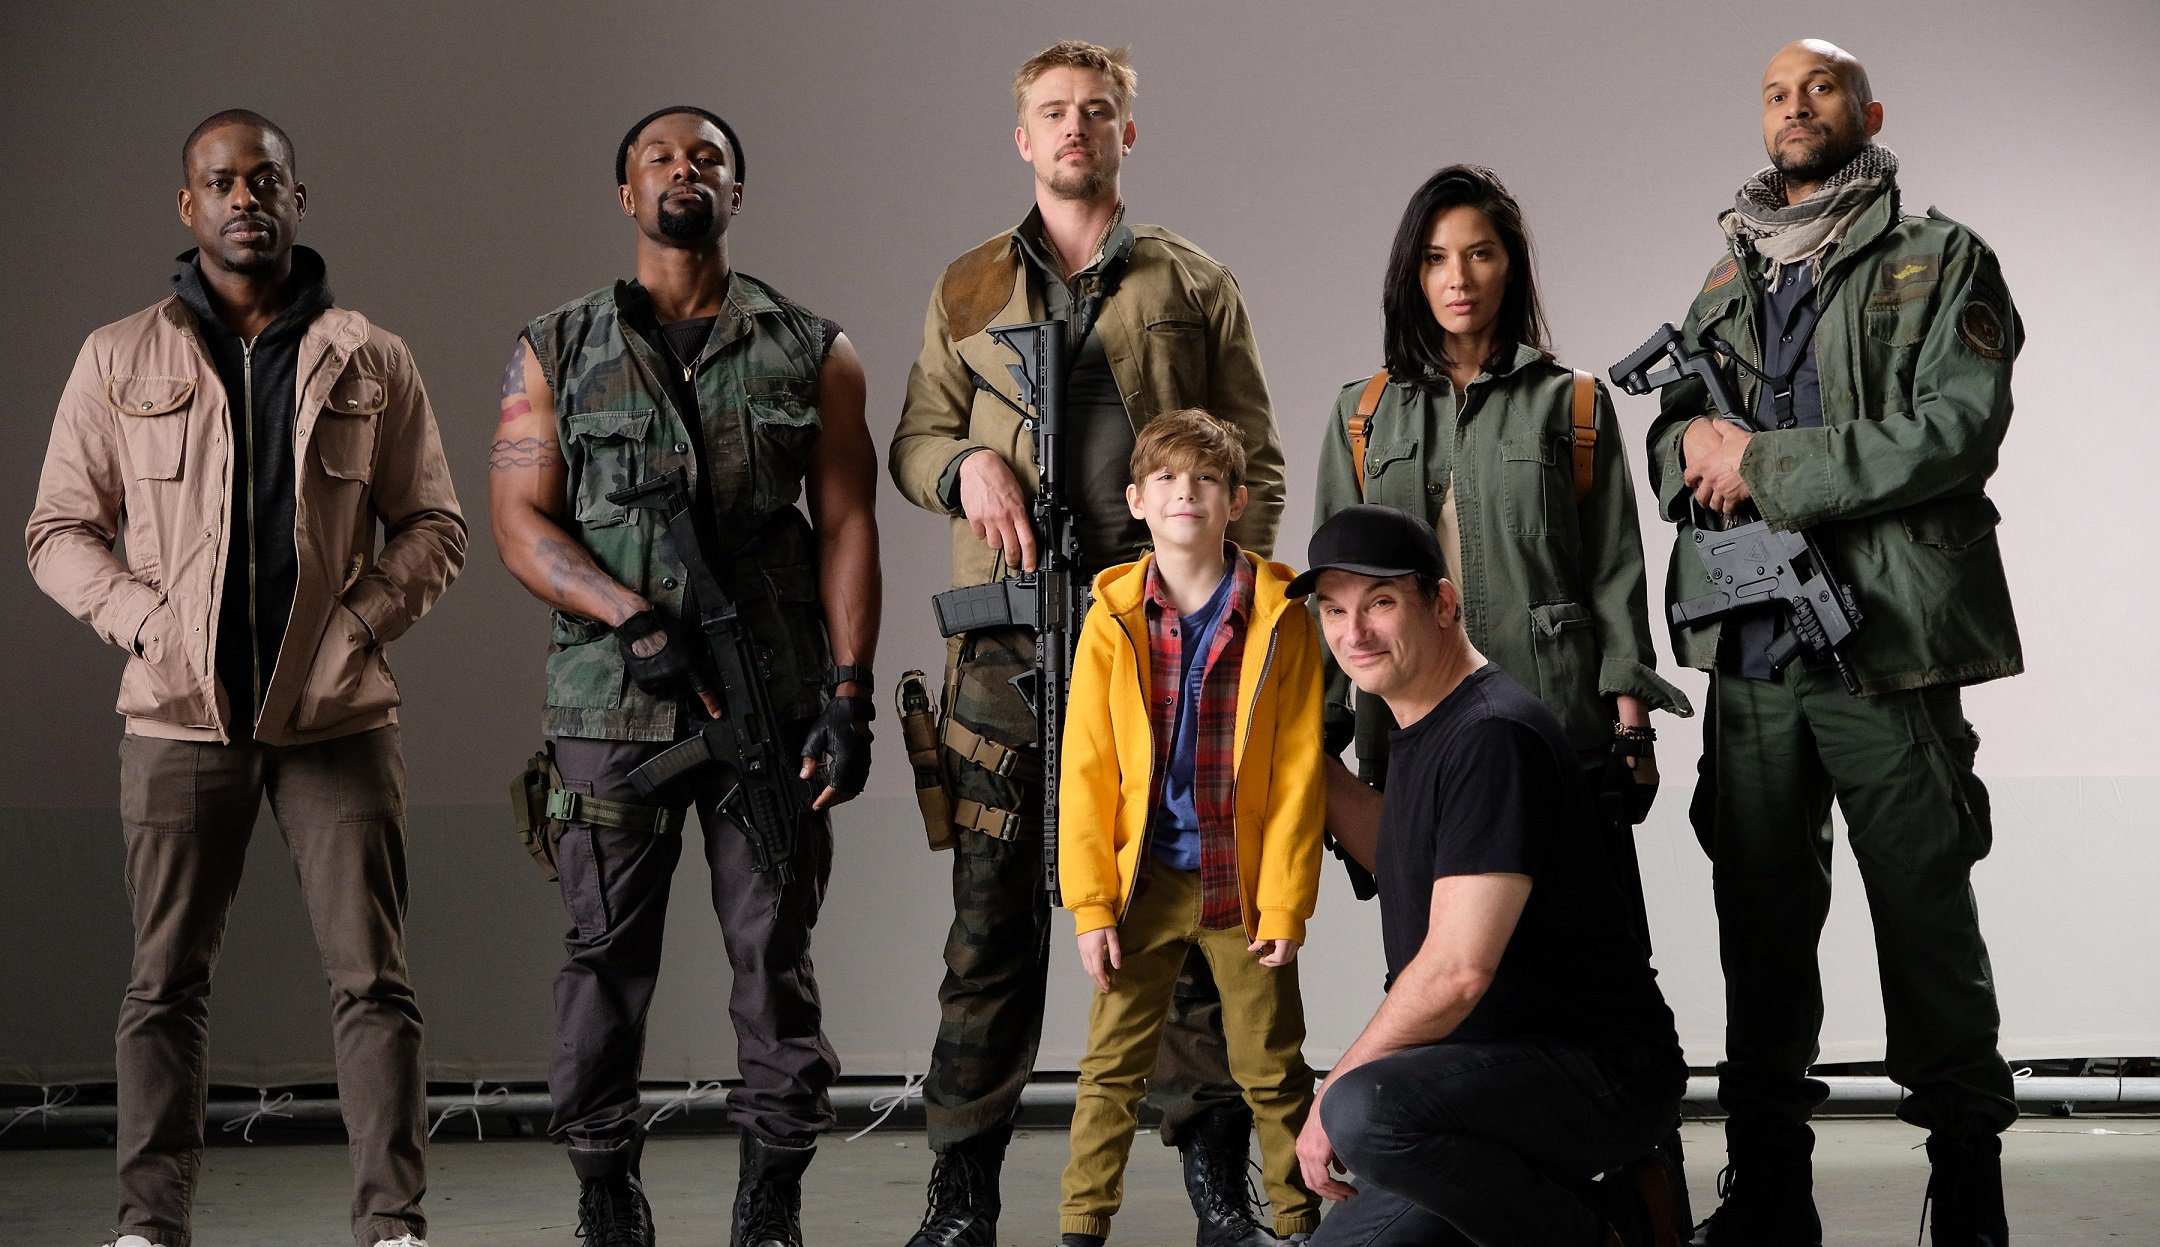 Sidebar-1-photo-The-cast-back-row-from-left-Sterling-K.-Brown-Trevante-Rhodes-Boyd-Holbrook-Olivia-Munn-Keegan-Michael-Key-front-row-Jacob-Tremblay-and-director-Shane-Black-1.jpg